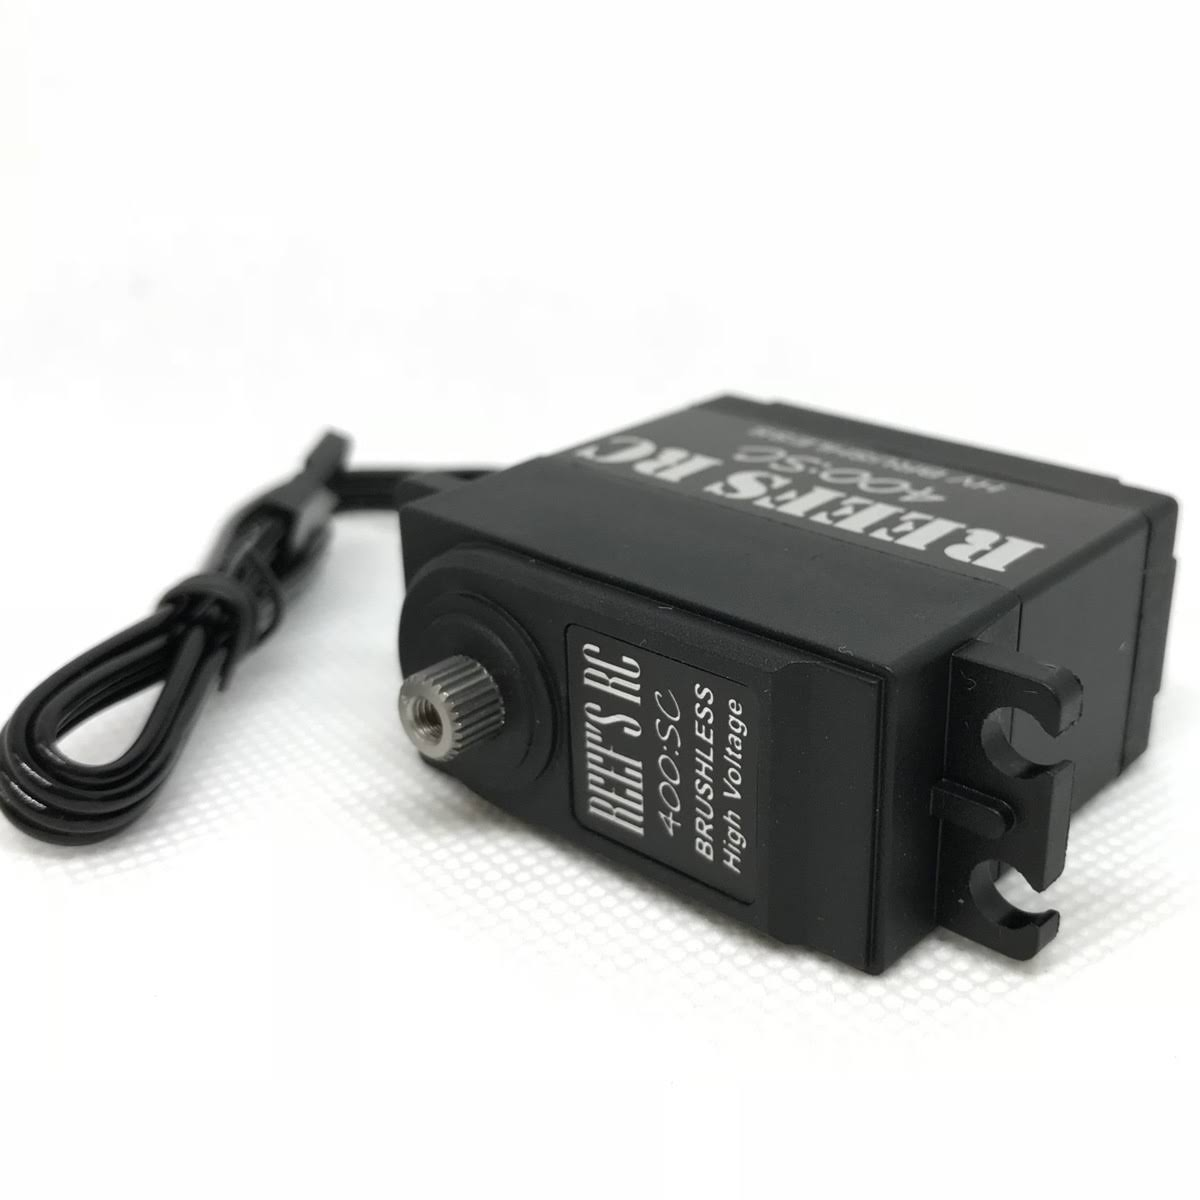 Reefs RC 400SC High Torque High Speed Digital Brushless Servo 0.07/427 @